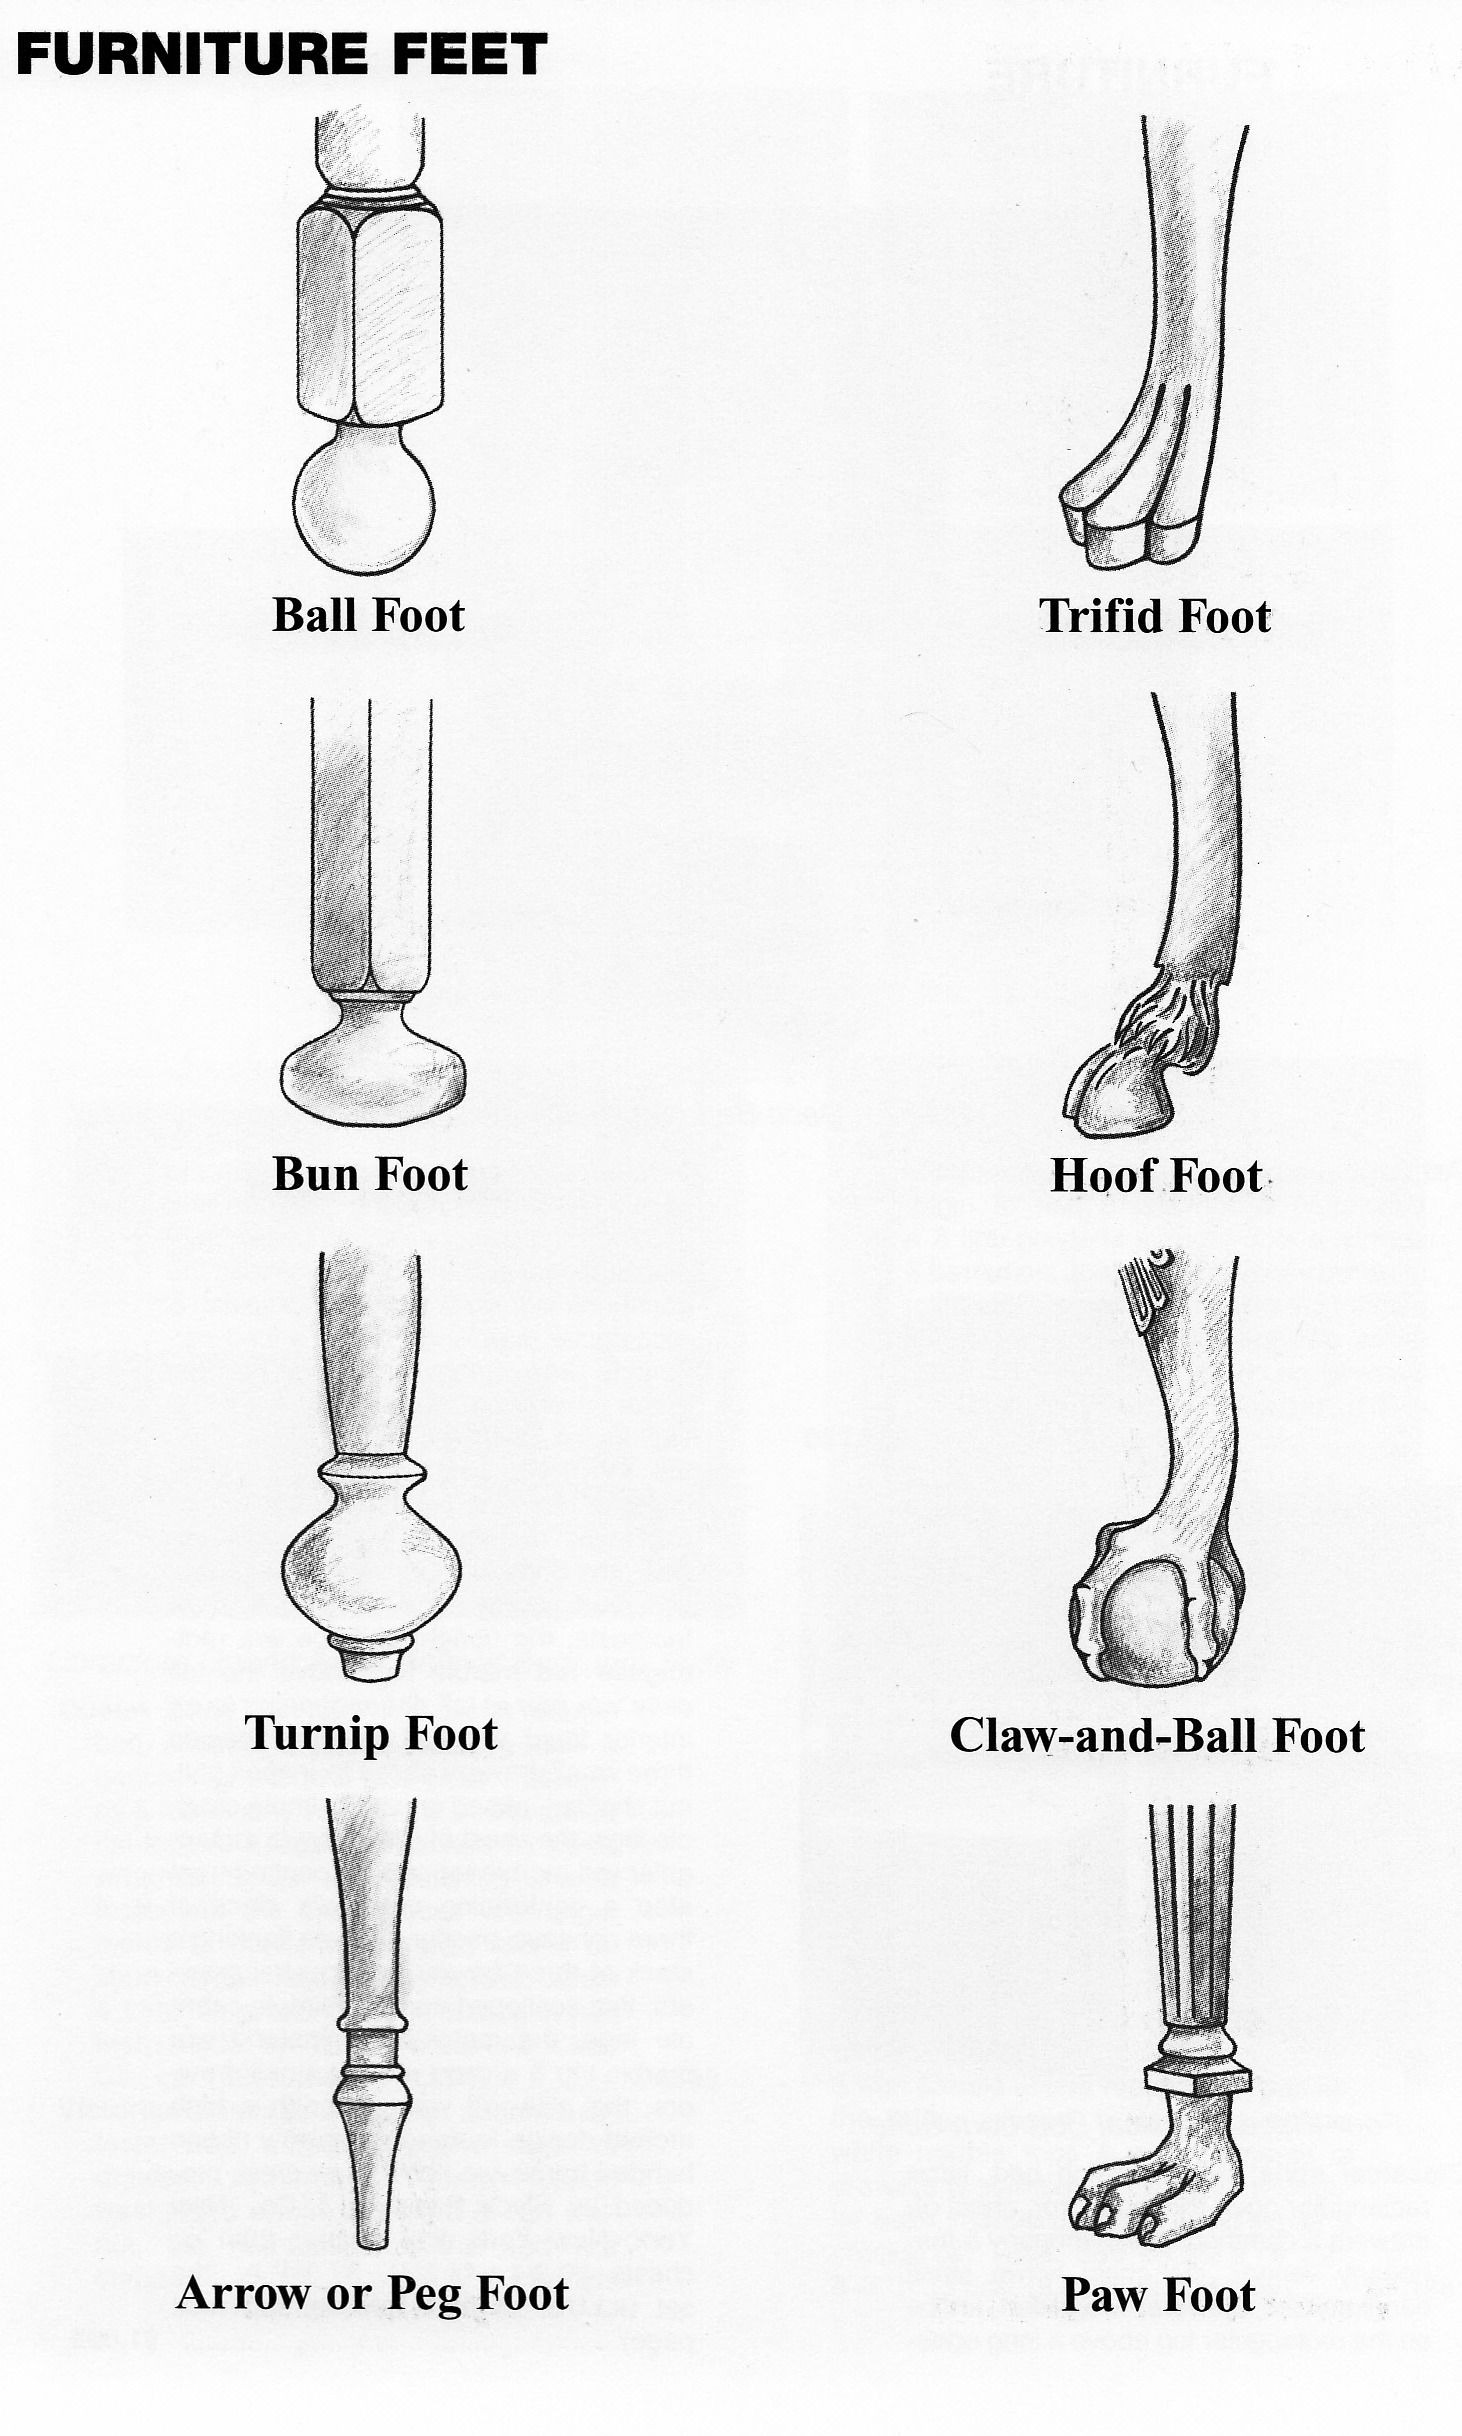 Antique Furniture Styles Guide Beautiful Diagrams Of Furniture Feet